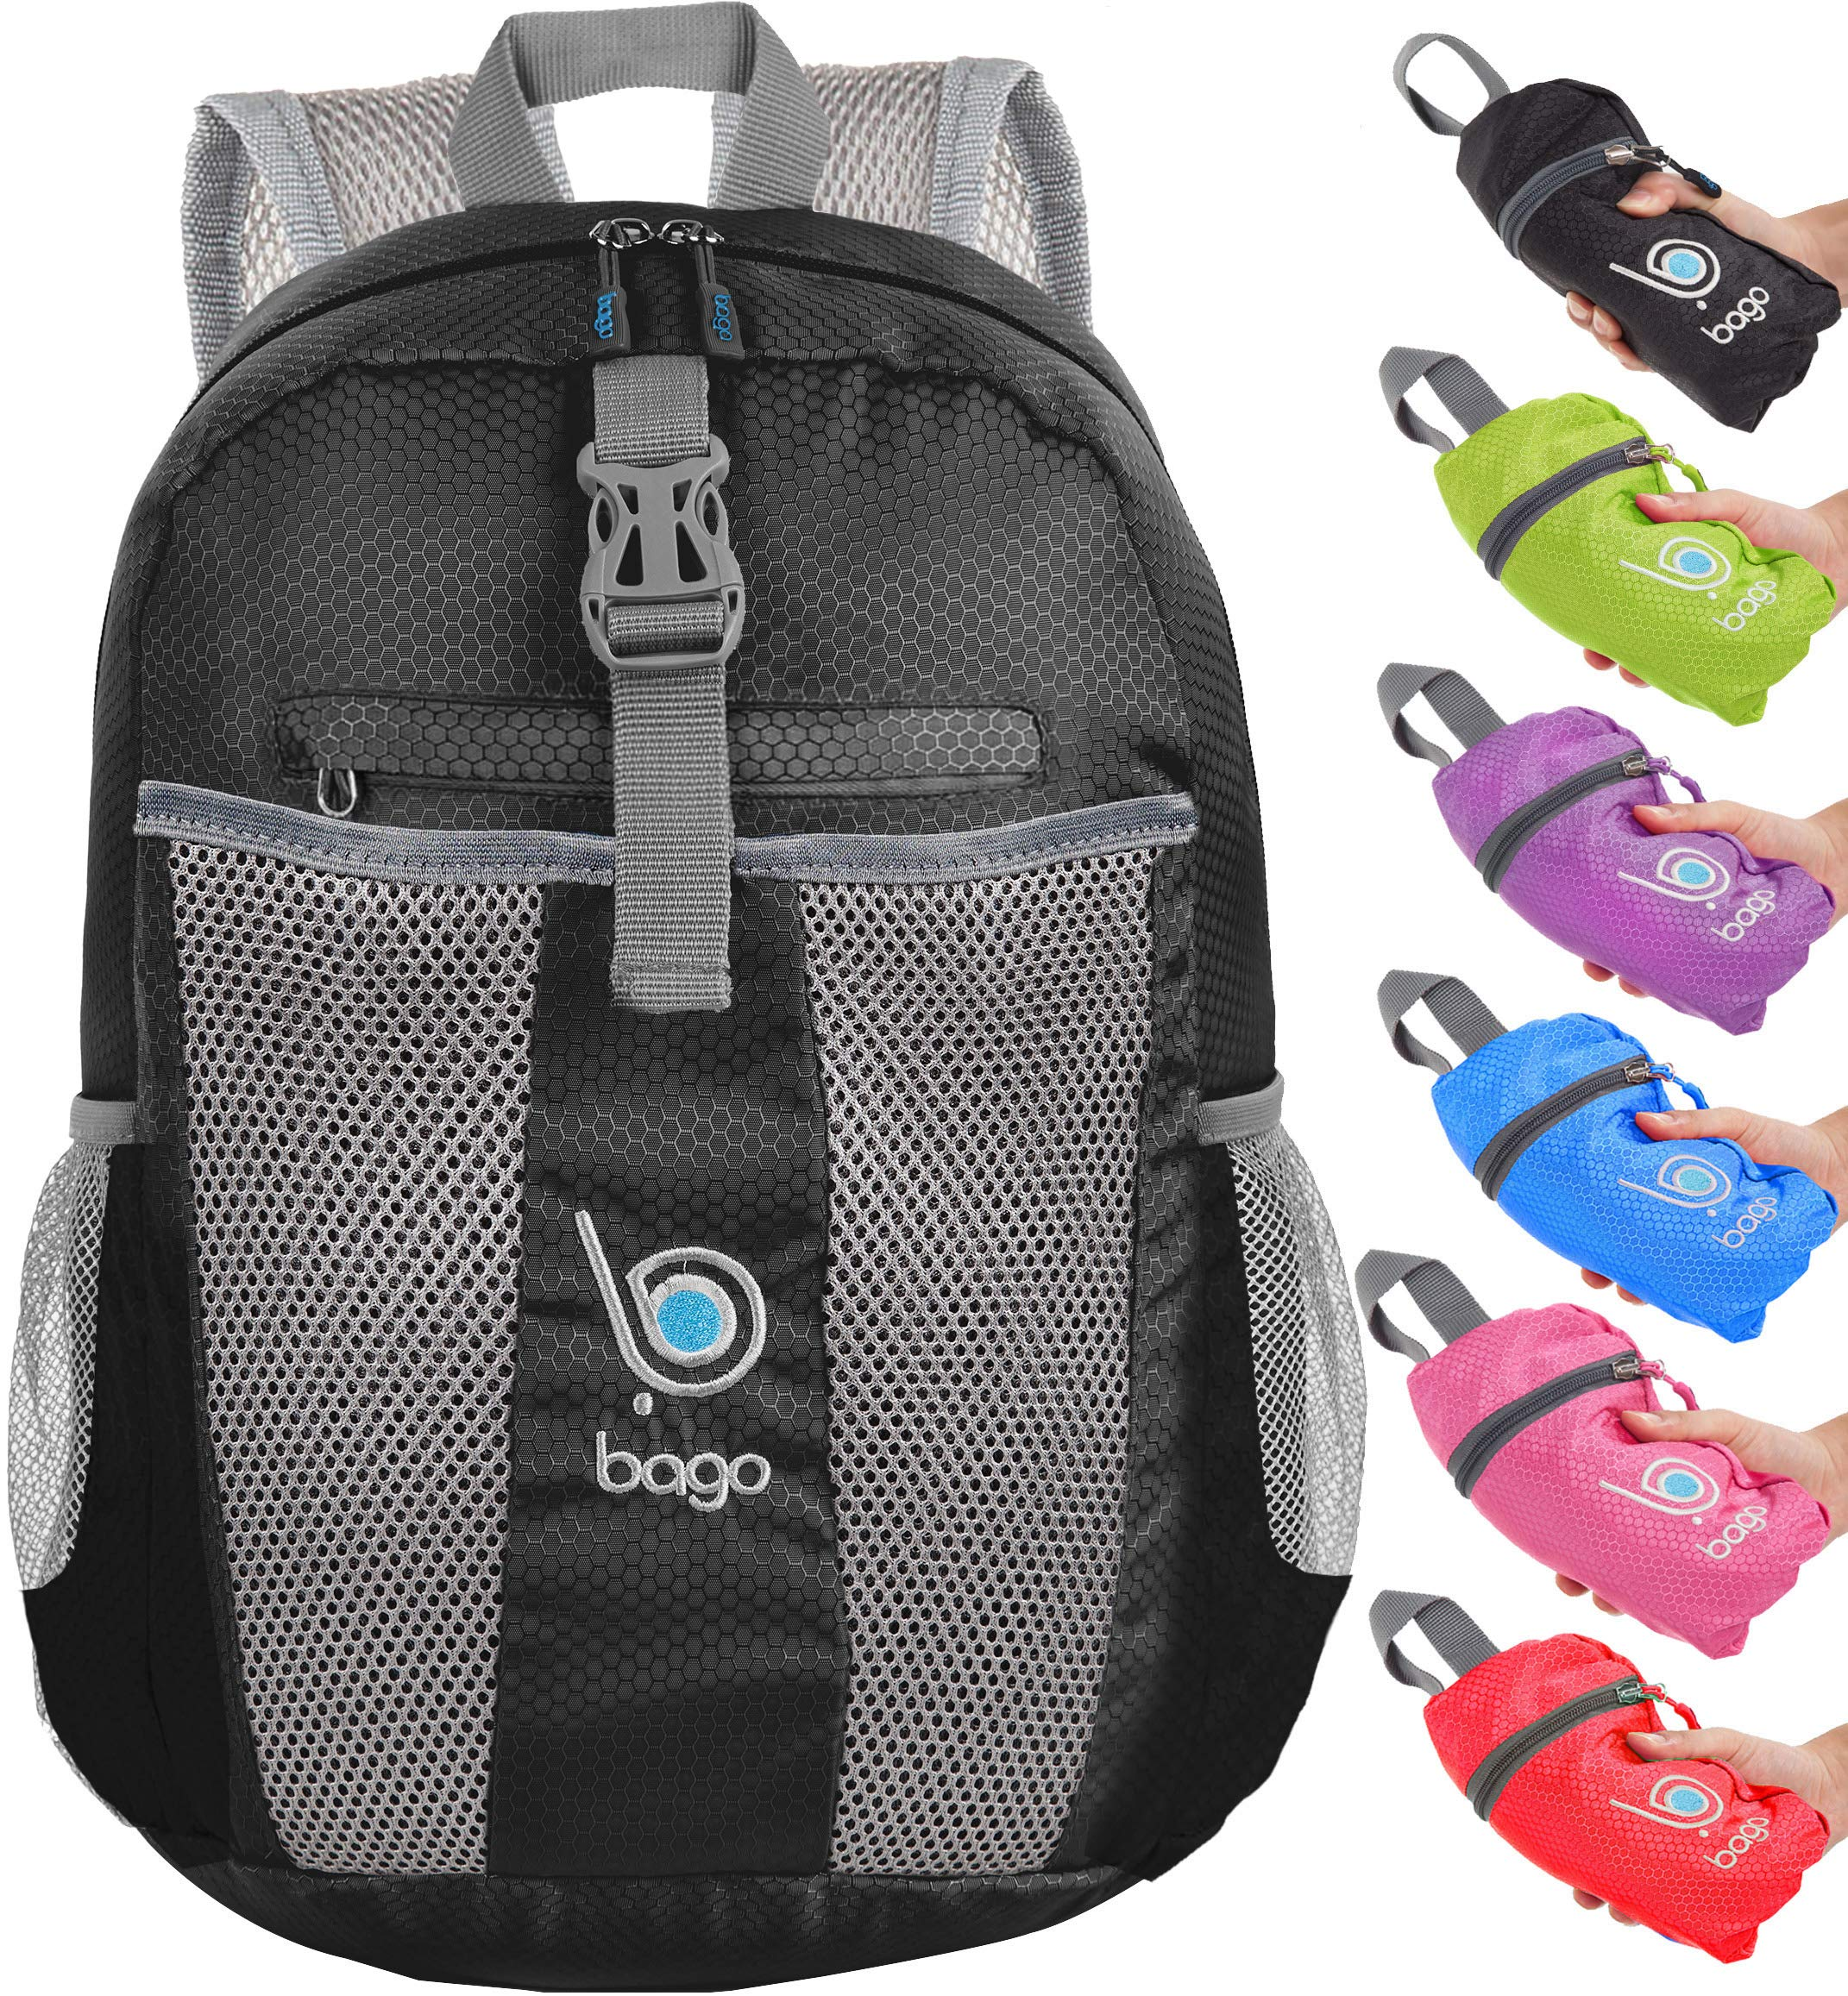 bago 25L Lightweight Packable Backpack - Water Resistant Travel Hiking  Foldable Camping Outdoor Backpack product image 83cebfd31581d